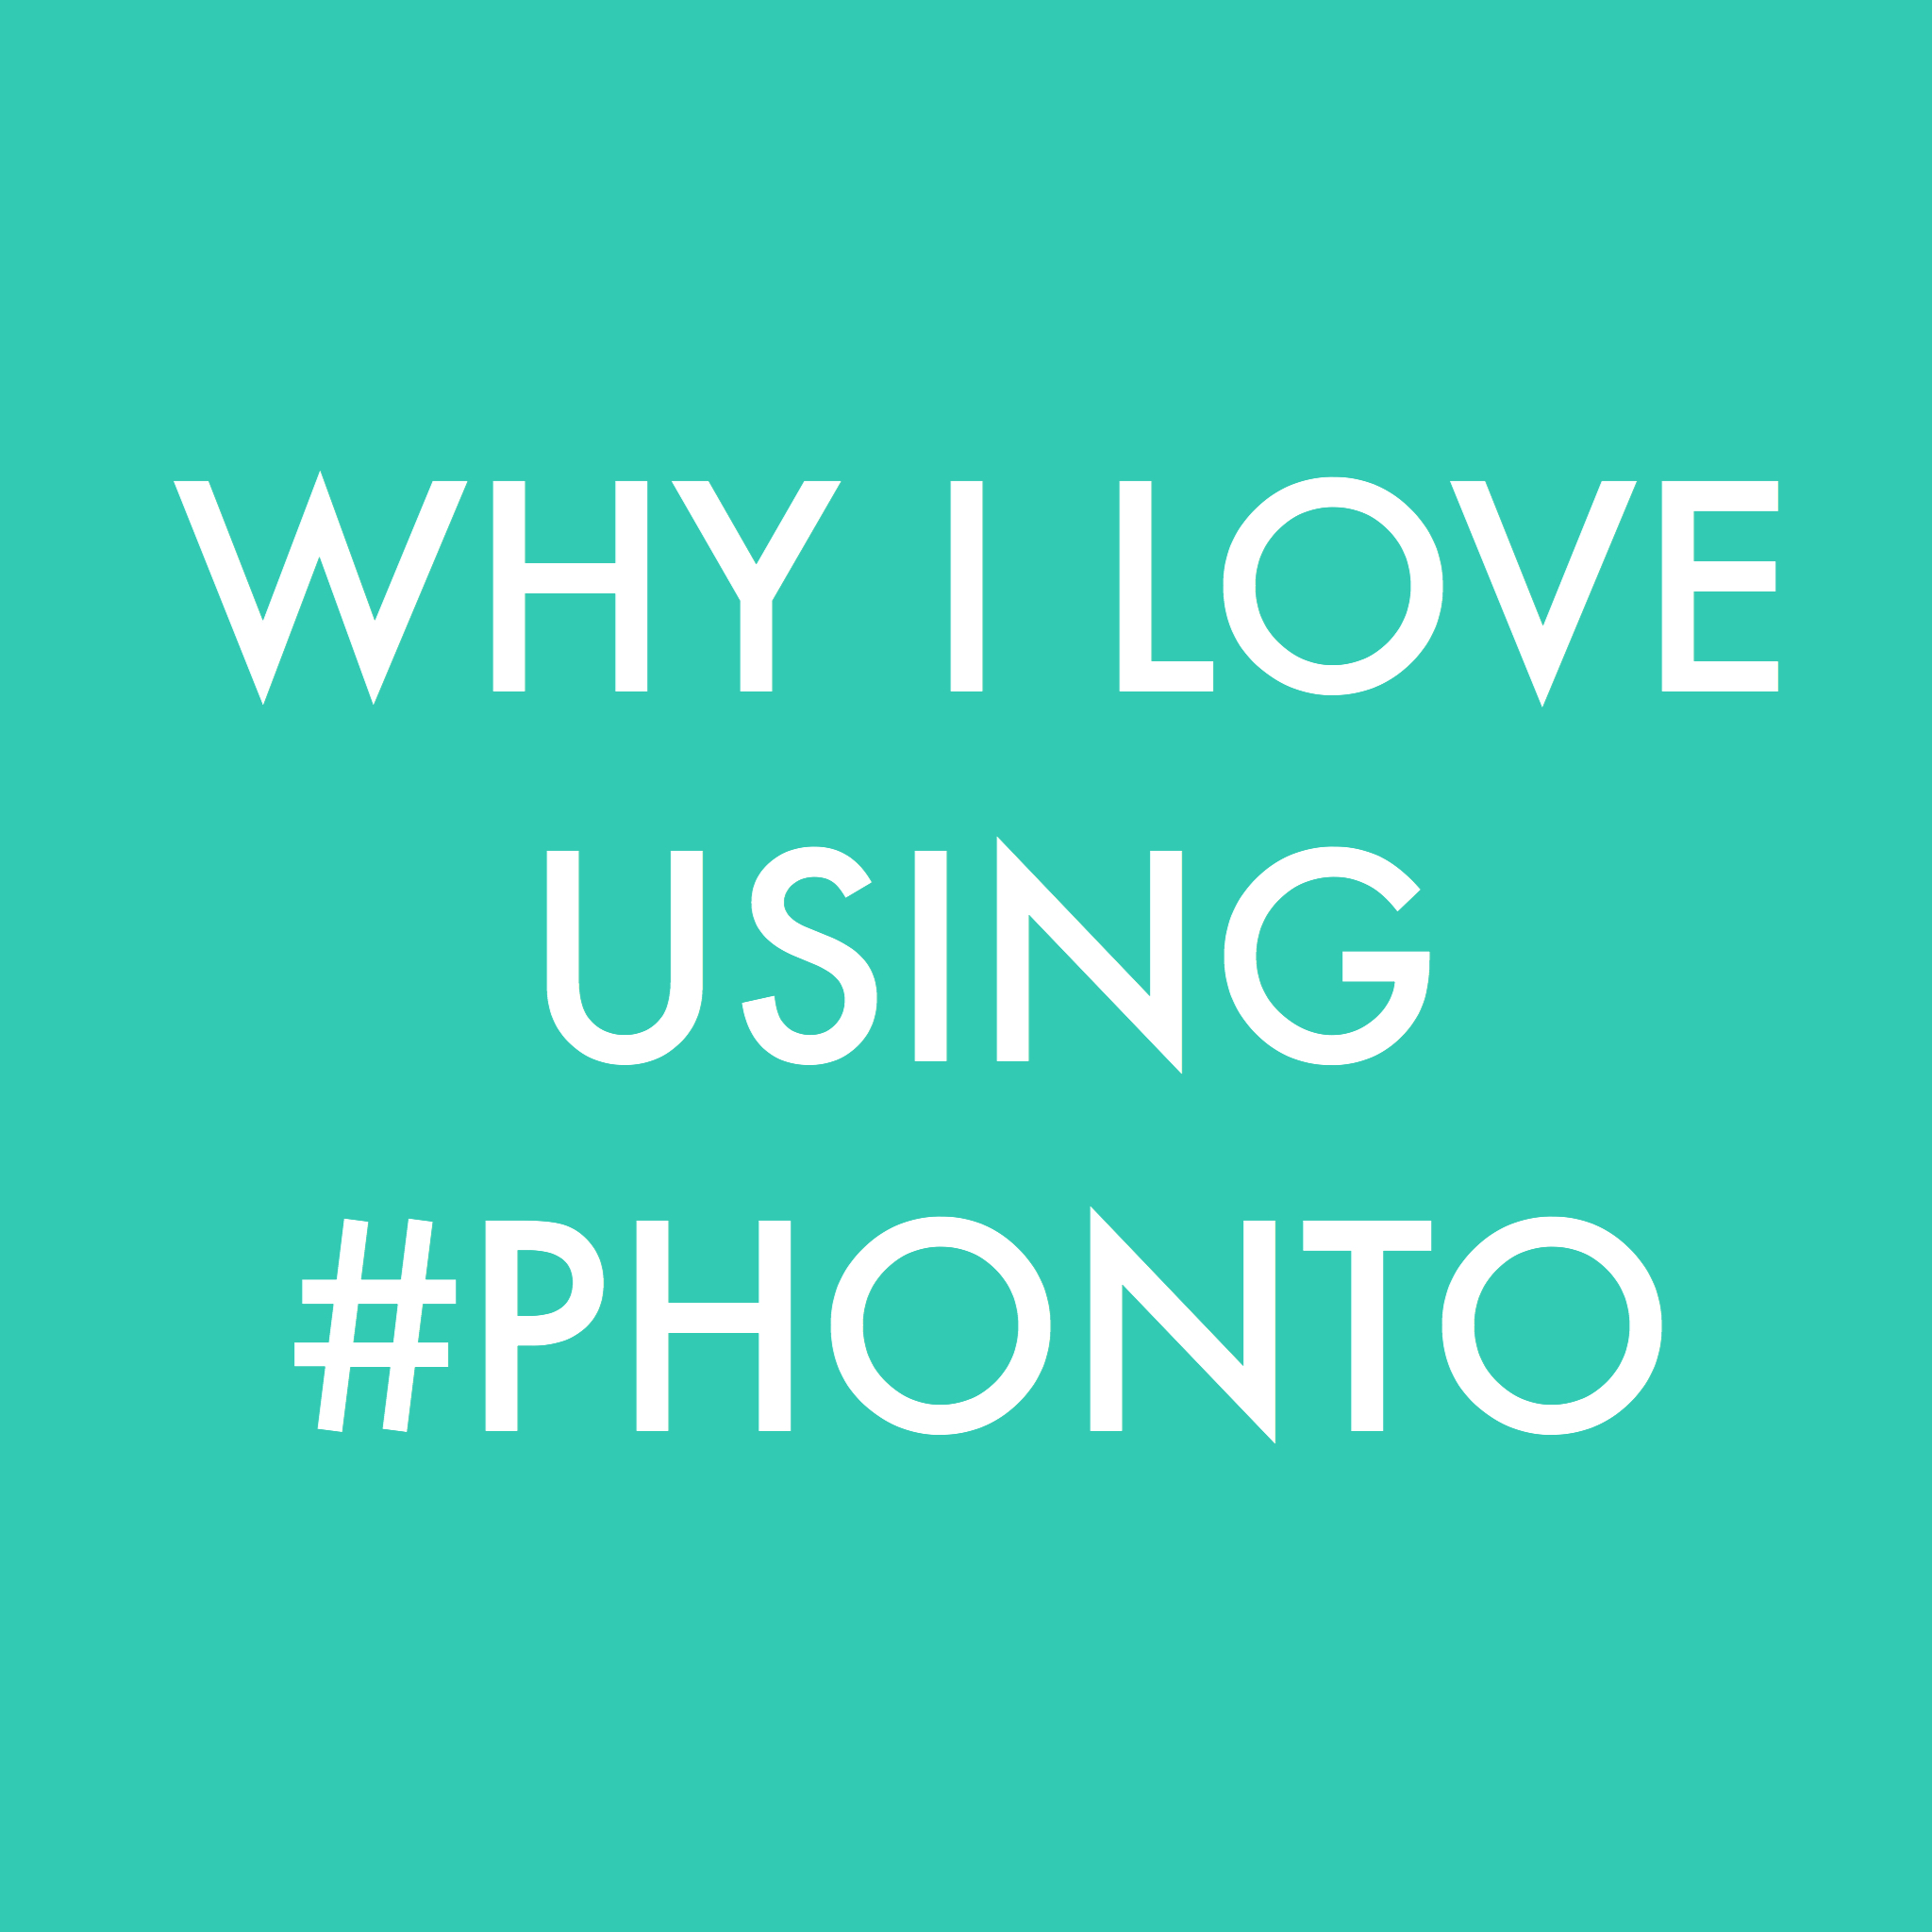 Phonto Photo Editing App